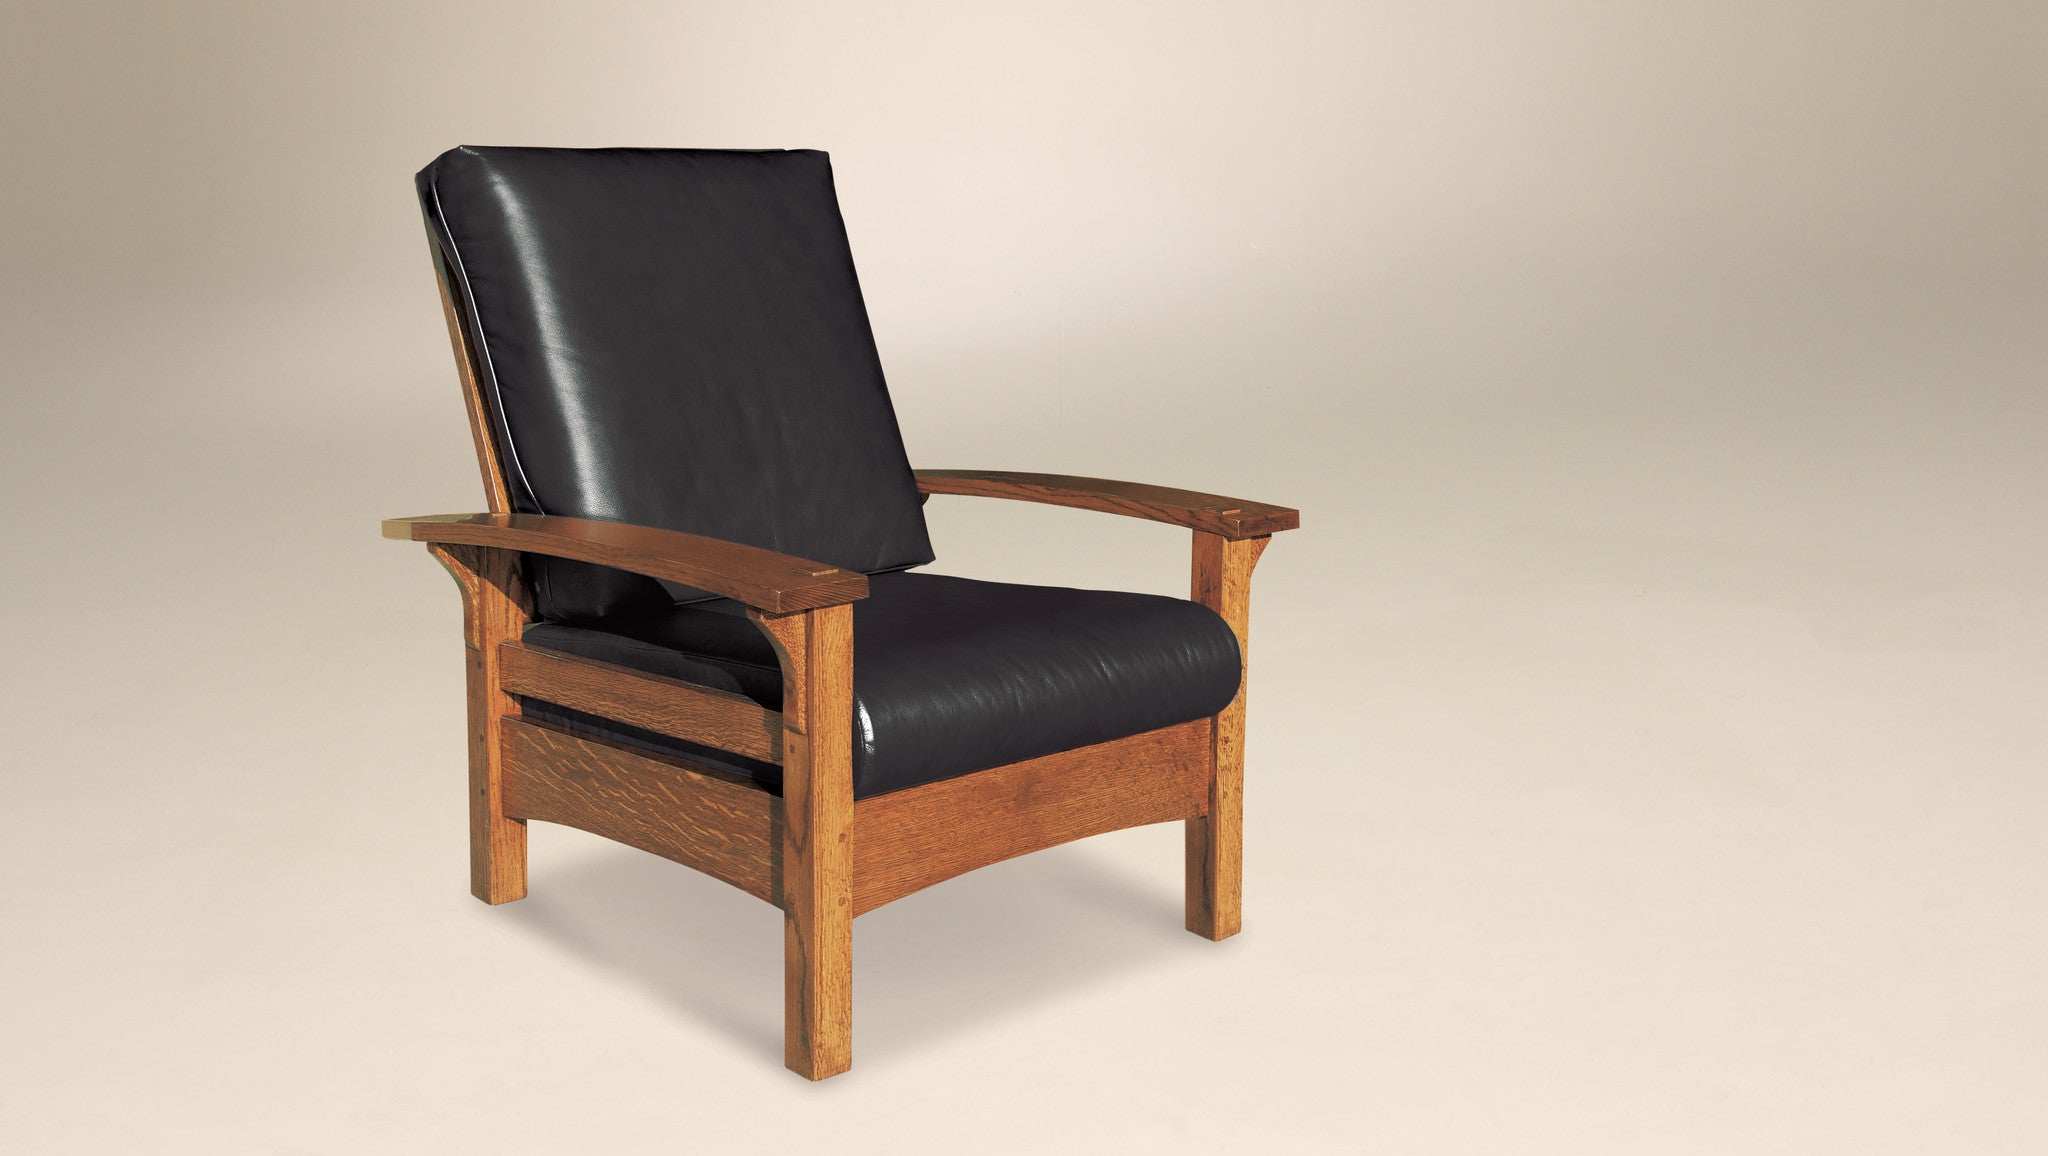 Durango Morris Chair & Durango Morris Chair u2013 Plain and Simple Furniture